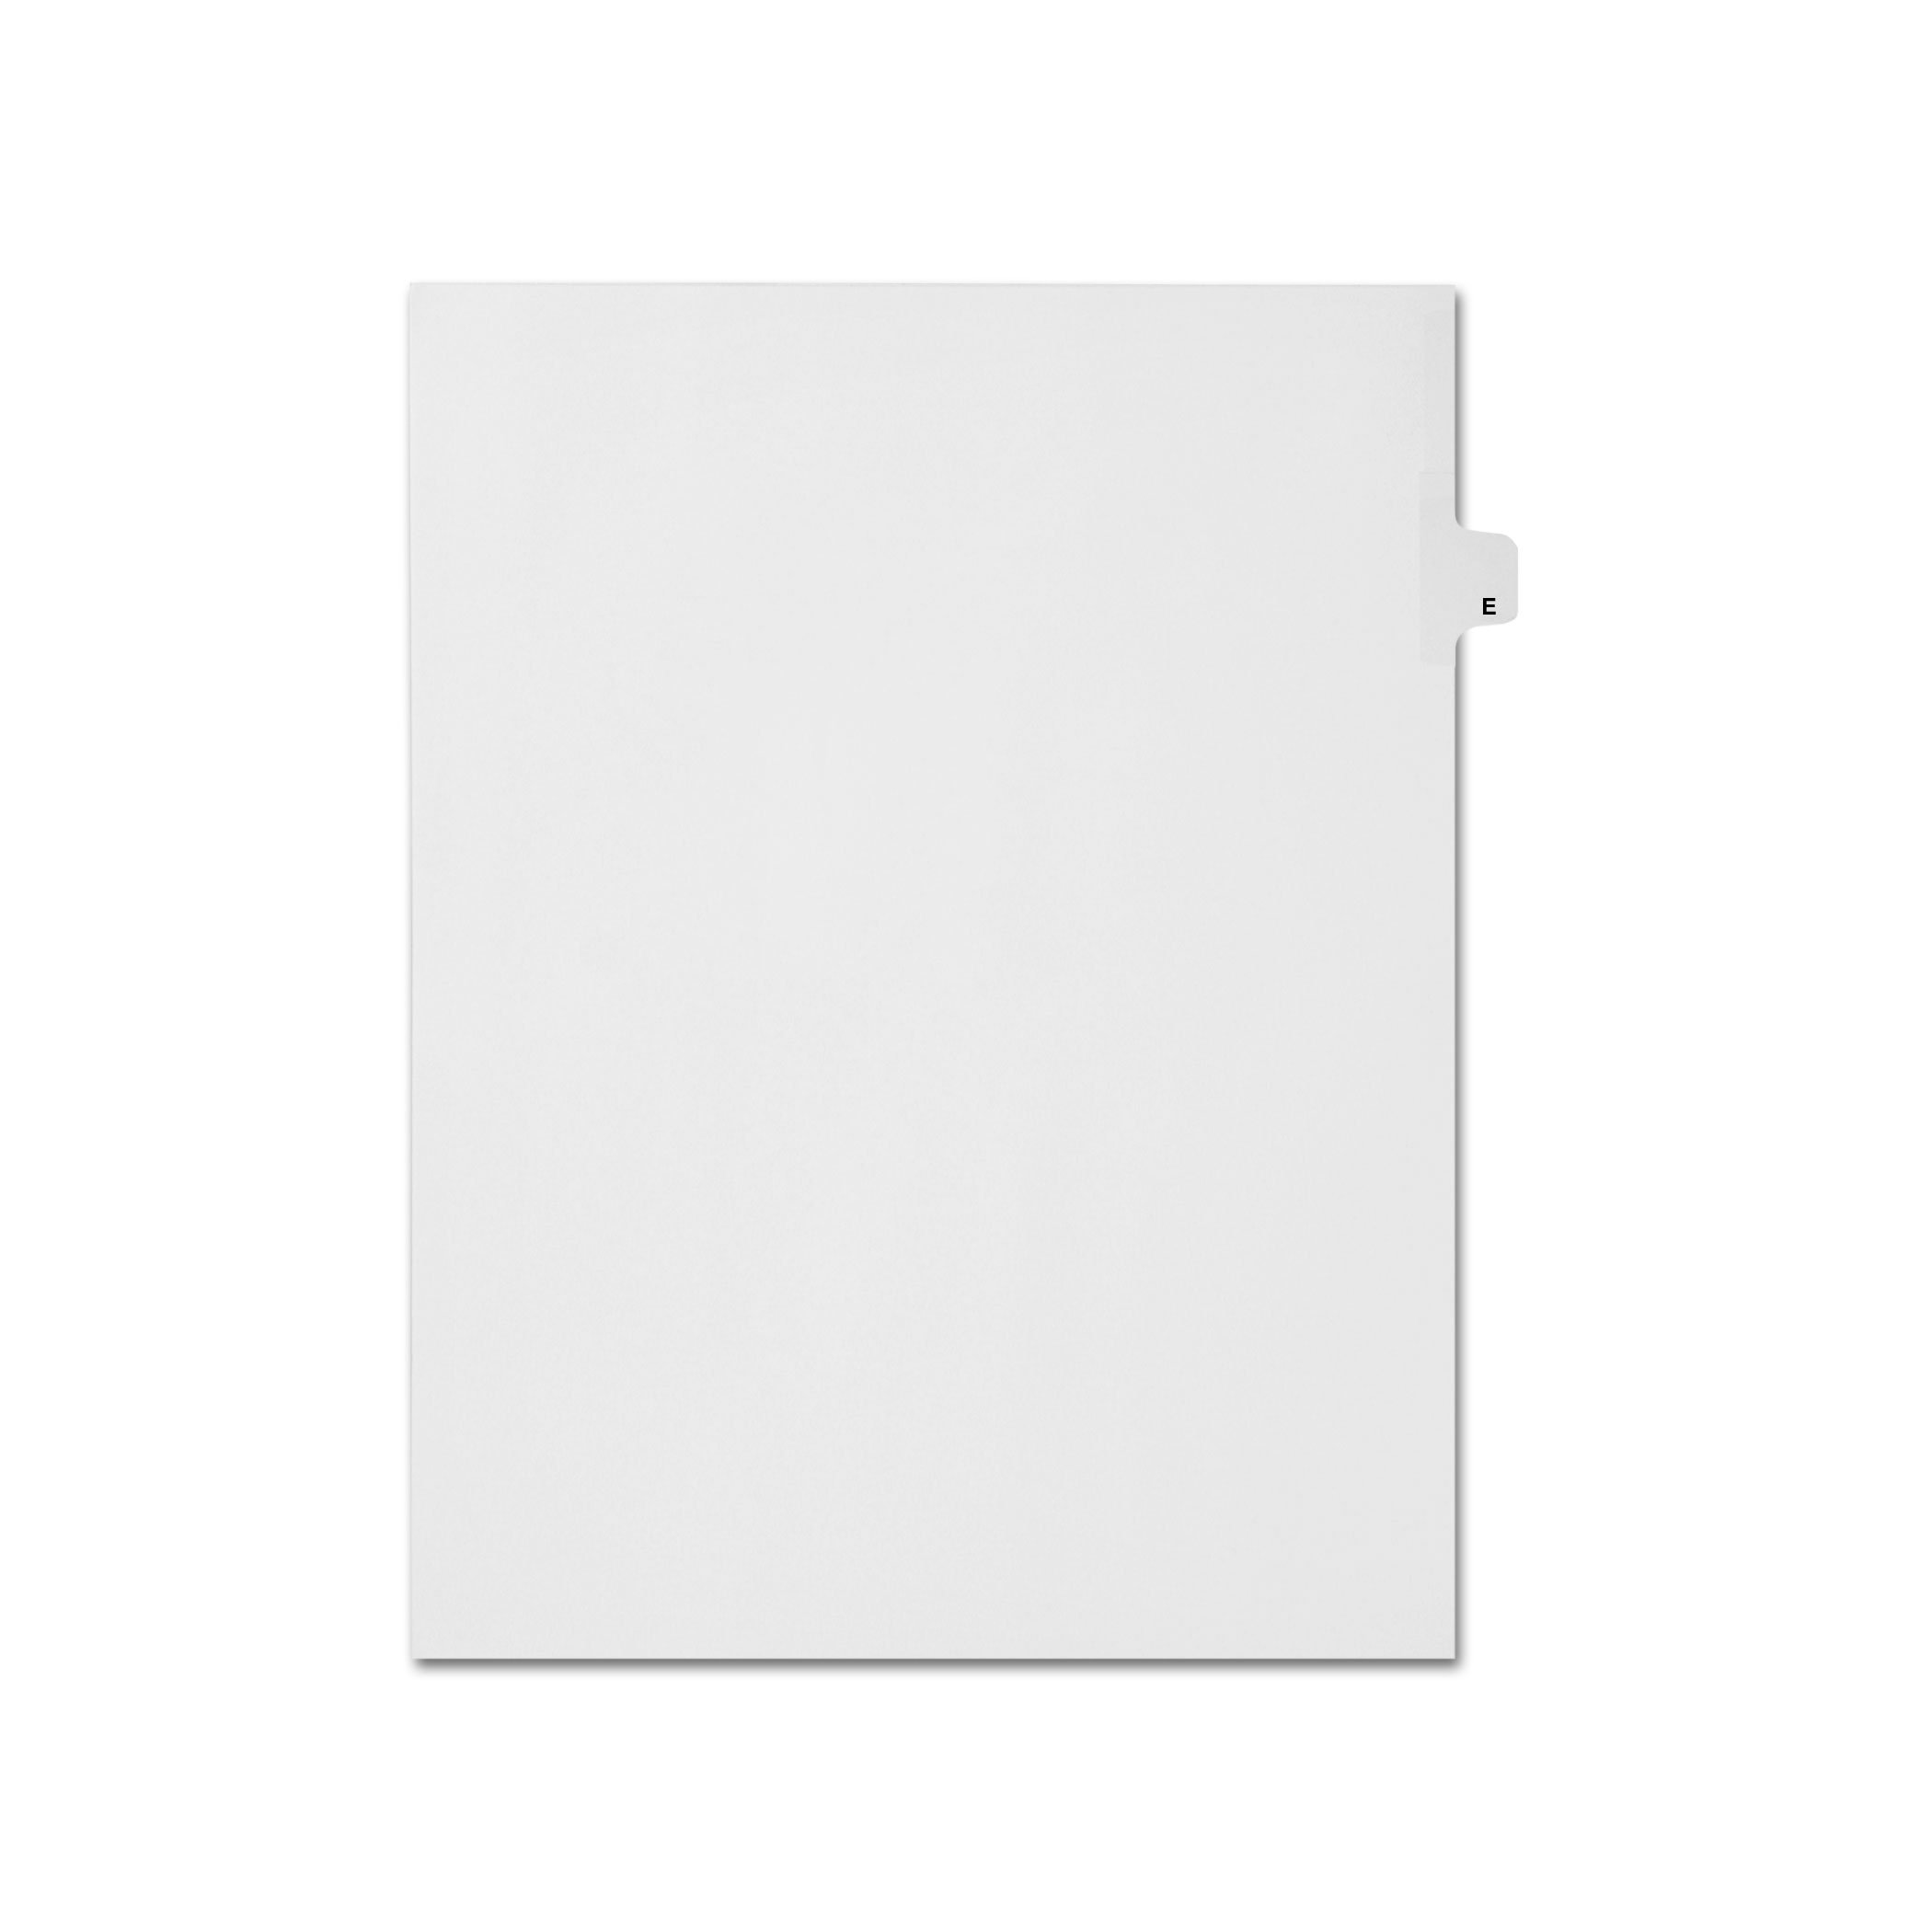 AMZfiling Individual Legal Index Tab Dividers, Compatible with Avery- Printed E, Letter Size, White, Side Tabs, Position 5 (25 Sheets/pkg)